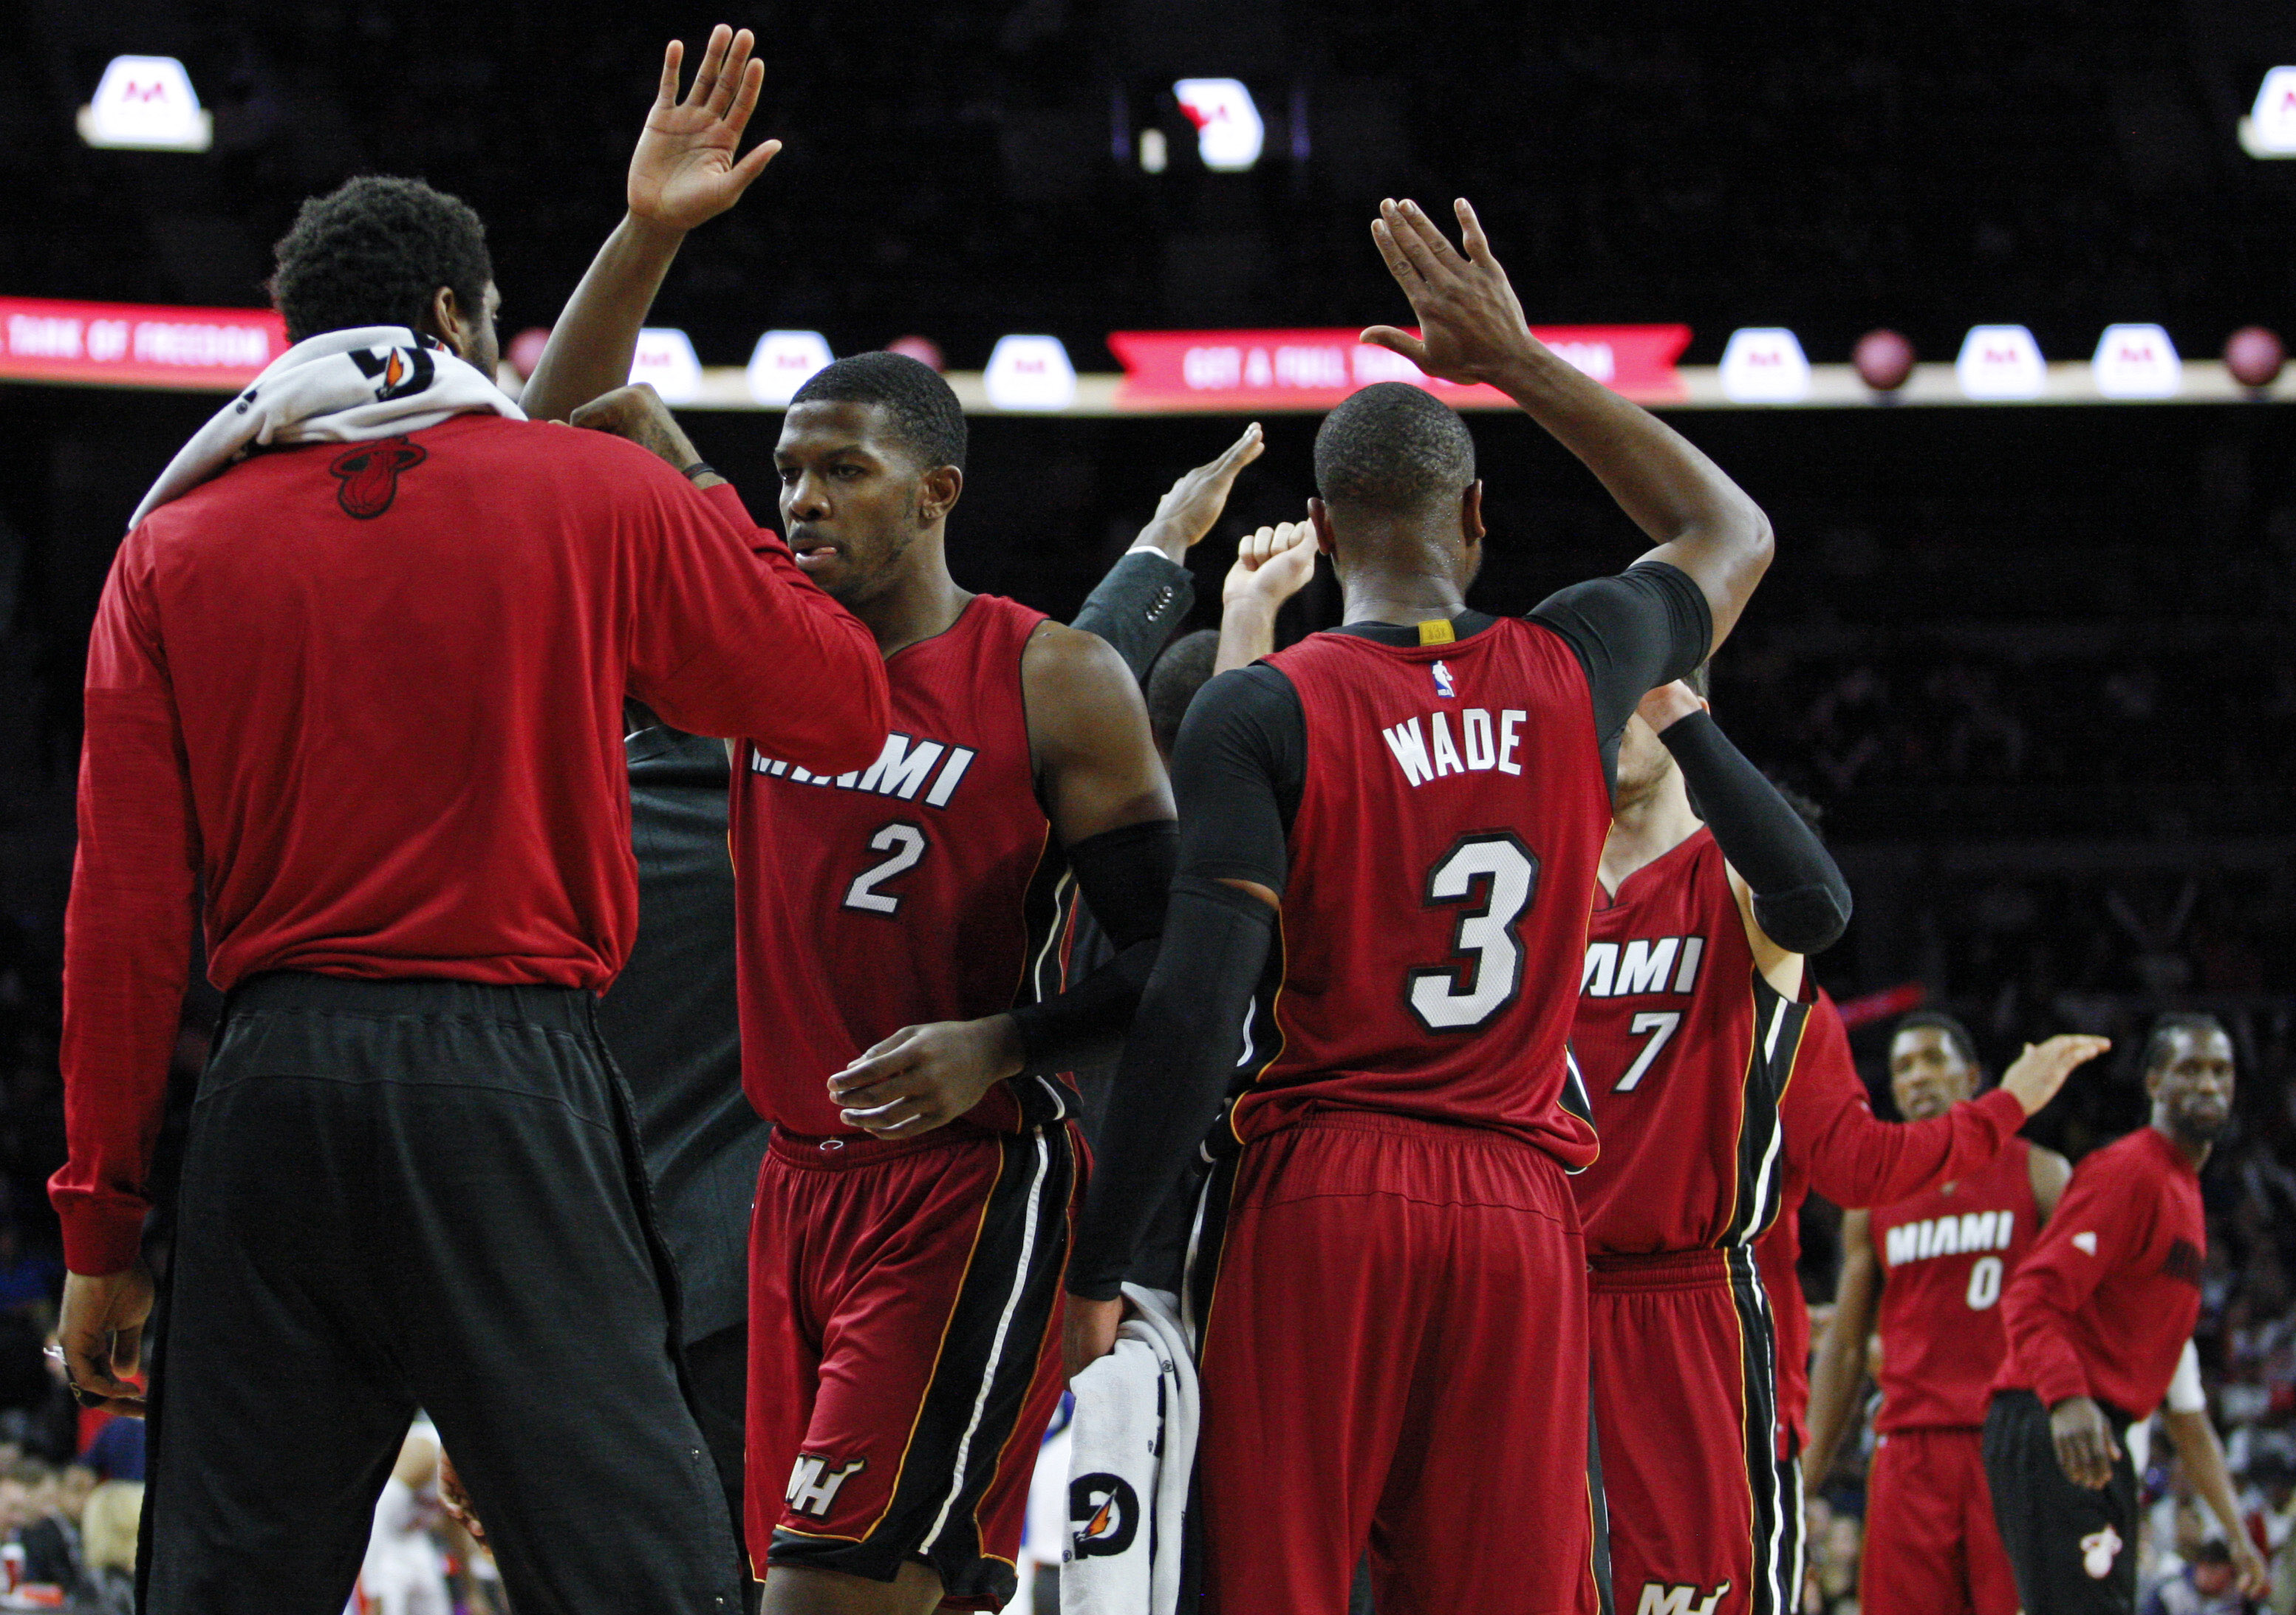 NBA scores 2016: Heat have the weapons to challenge anyone in the East